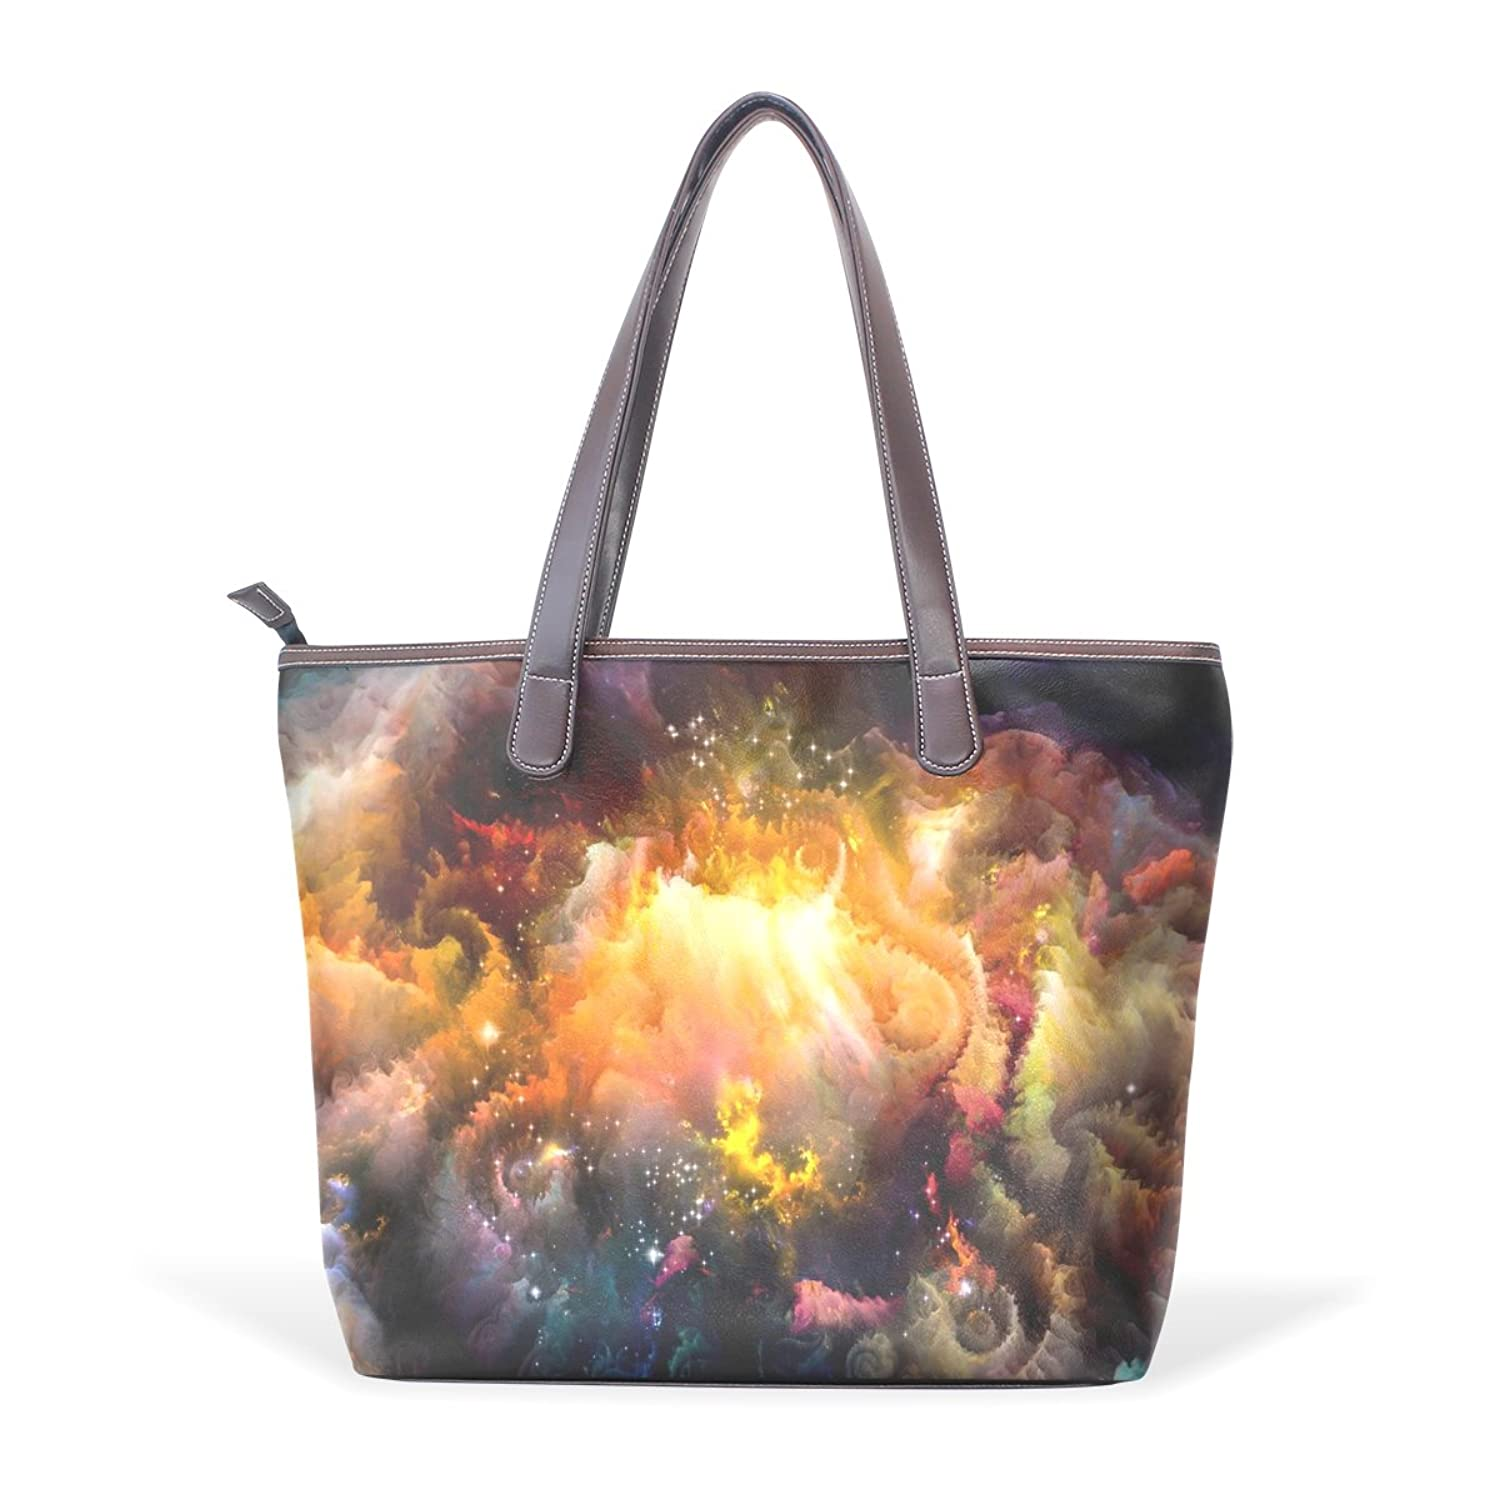 Womens Leather Tote Bag,Universe Galaxy Space Star Meteor,Large Handbag